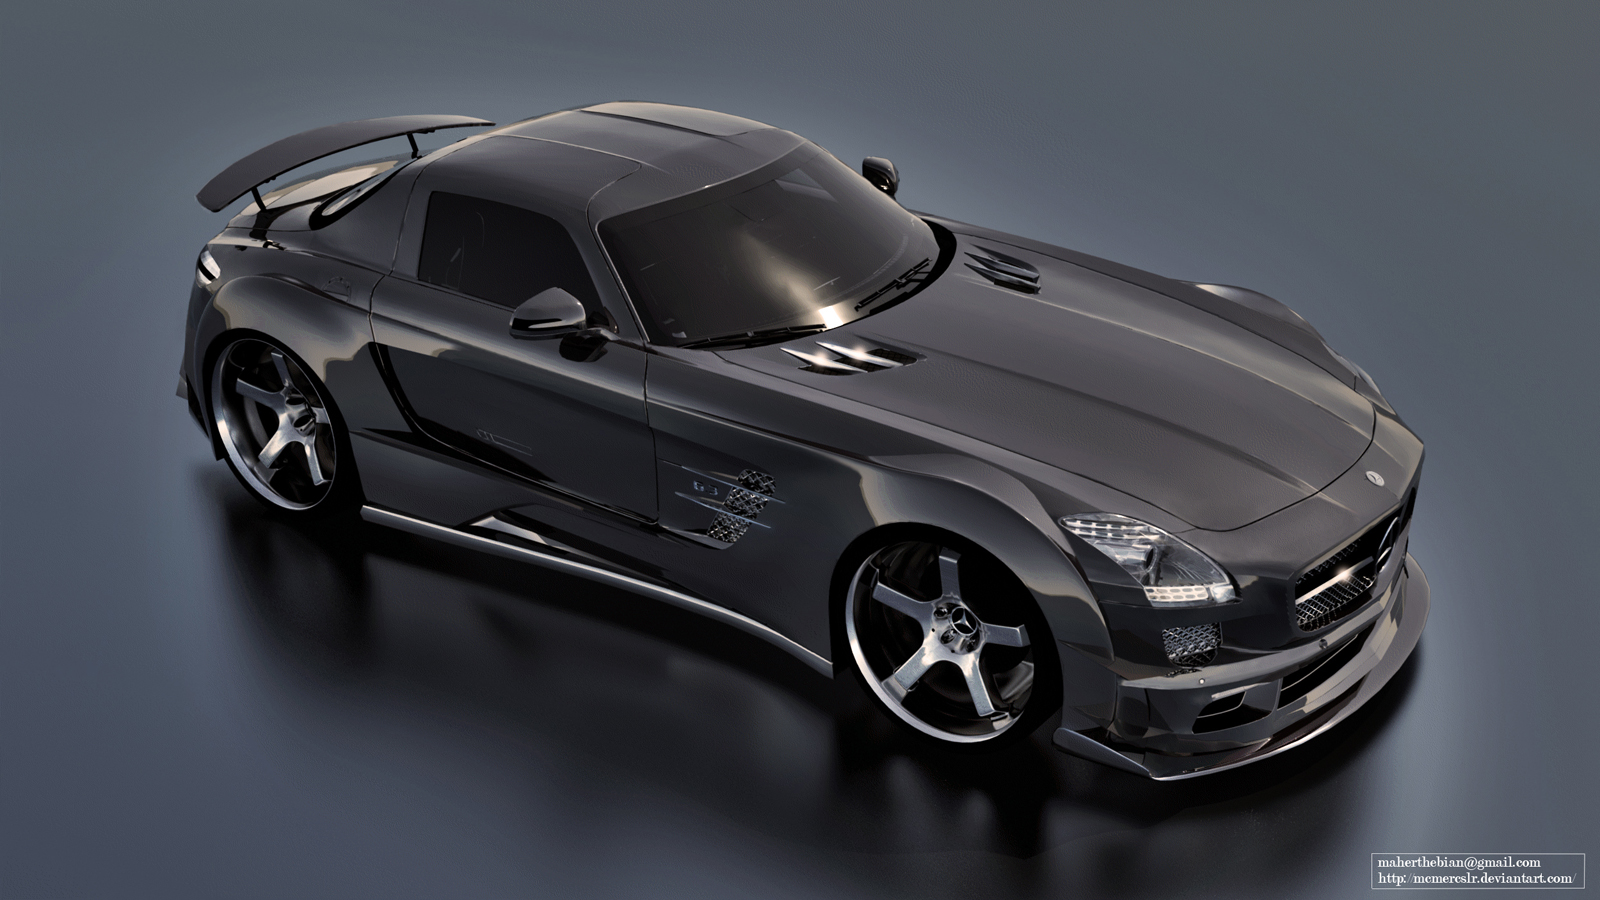 Render: Mercedes Benz SLS AMG Bodykit By Maher Thebian